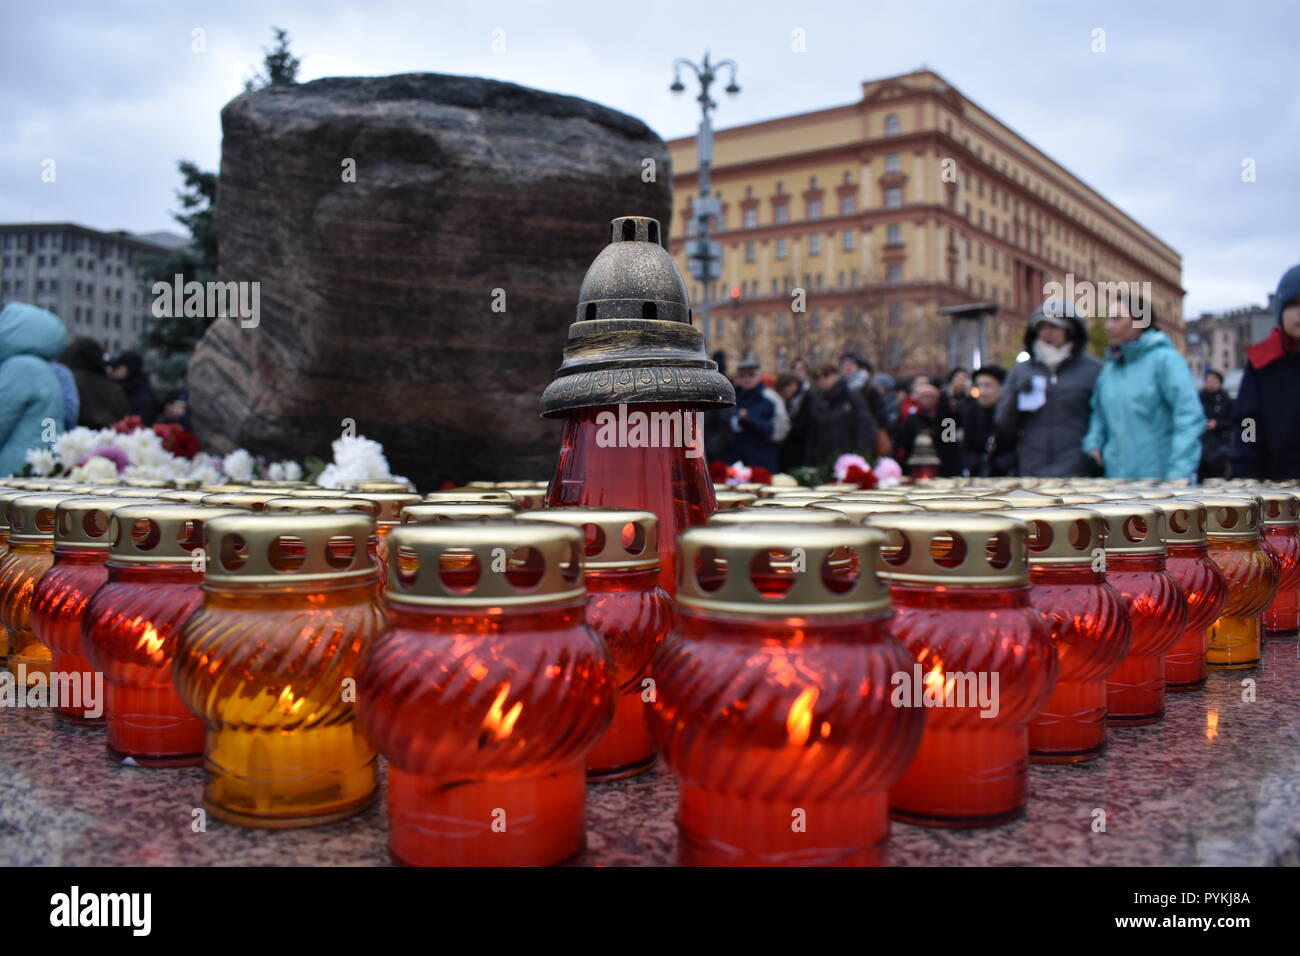 Moscow, Russia. 29th Oct, 2018. Hundreds of people remembered the victims of the terror under Soviet dictator Josef Stalin at a vigil. They placed burial candles and flowers in front of the building in which the Soviet secret service KGB used to be based and where the domestic secret service FSB now resides. They also read out the names of the victims. Credit: Christian Thiele/dpa-Zentralbild/dpa/Alamy Live News - Stock Image